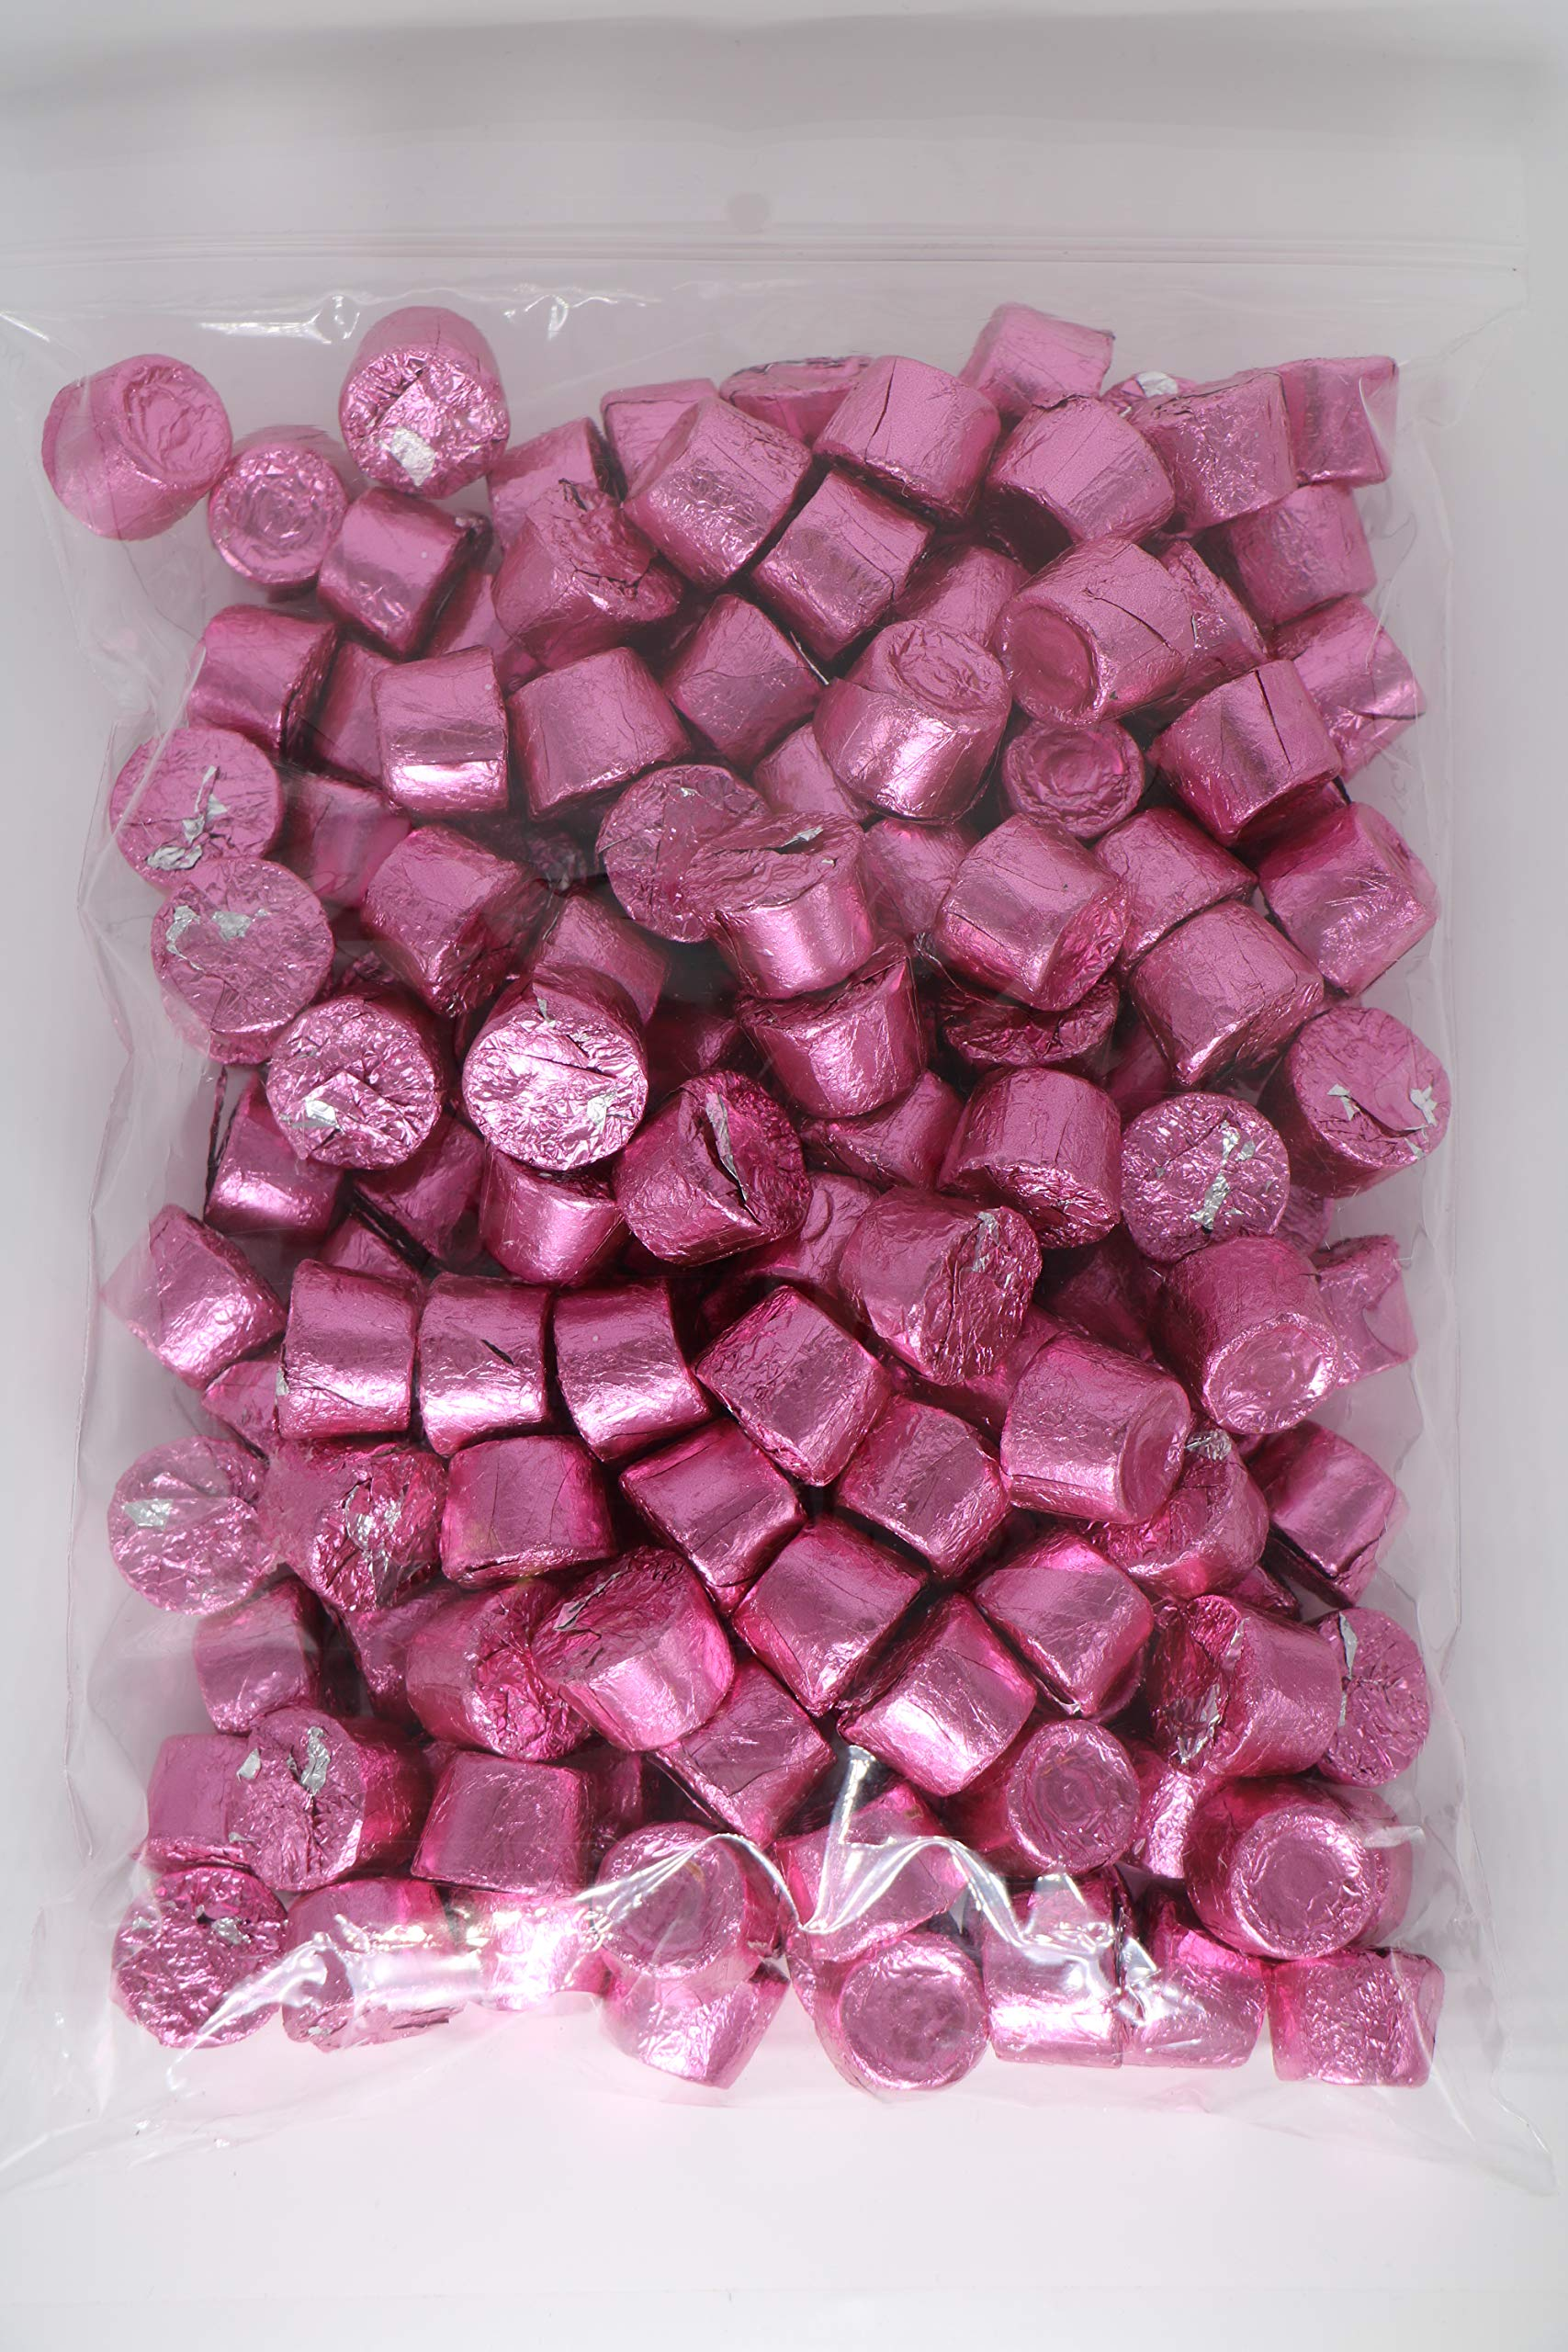 ROLO Candy Chewy Caramels in Milk Chocolate | Share It On Balloon Fiesta, Thanksgiving , Christmas, | Pink Candy for Candy Buffet - 2 lb